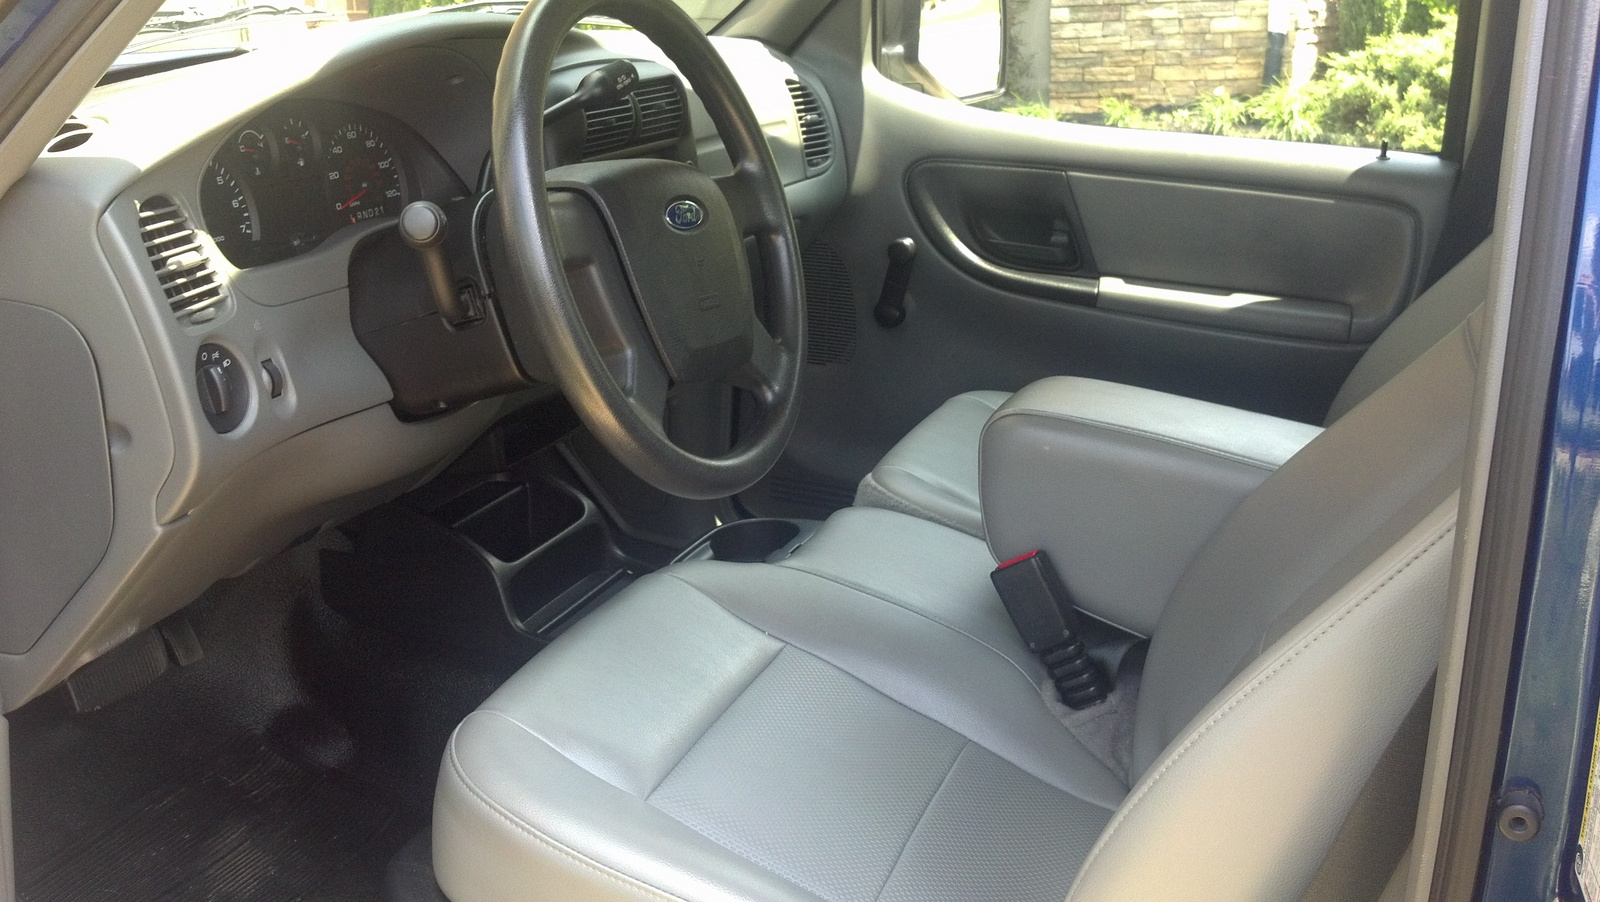 2008 Ford Ranger Interior Pictures Cargurus Make Your Own Beautiful  HD Wallpapers, Images Over 1000+ [ralydesign.ml]